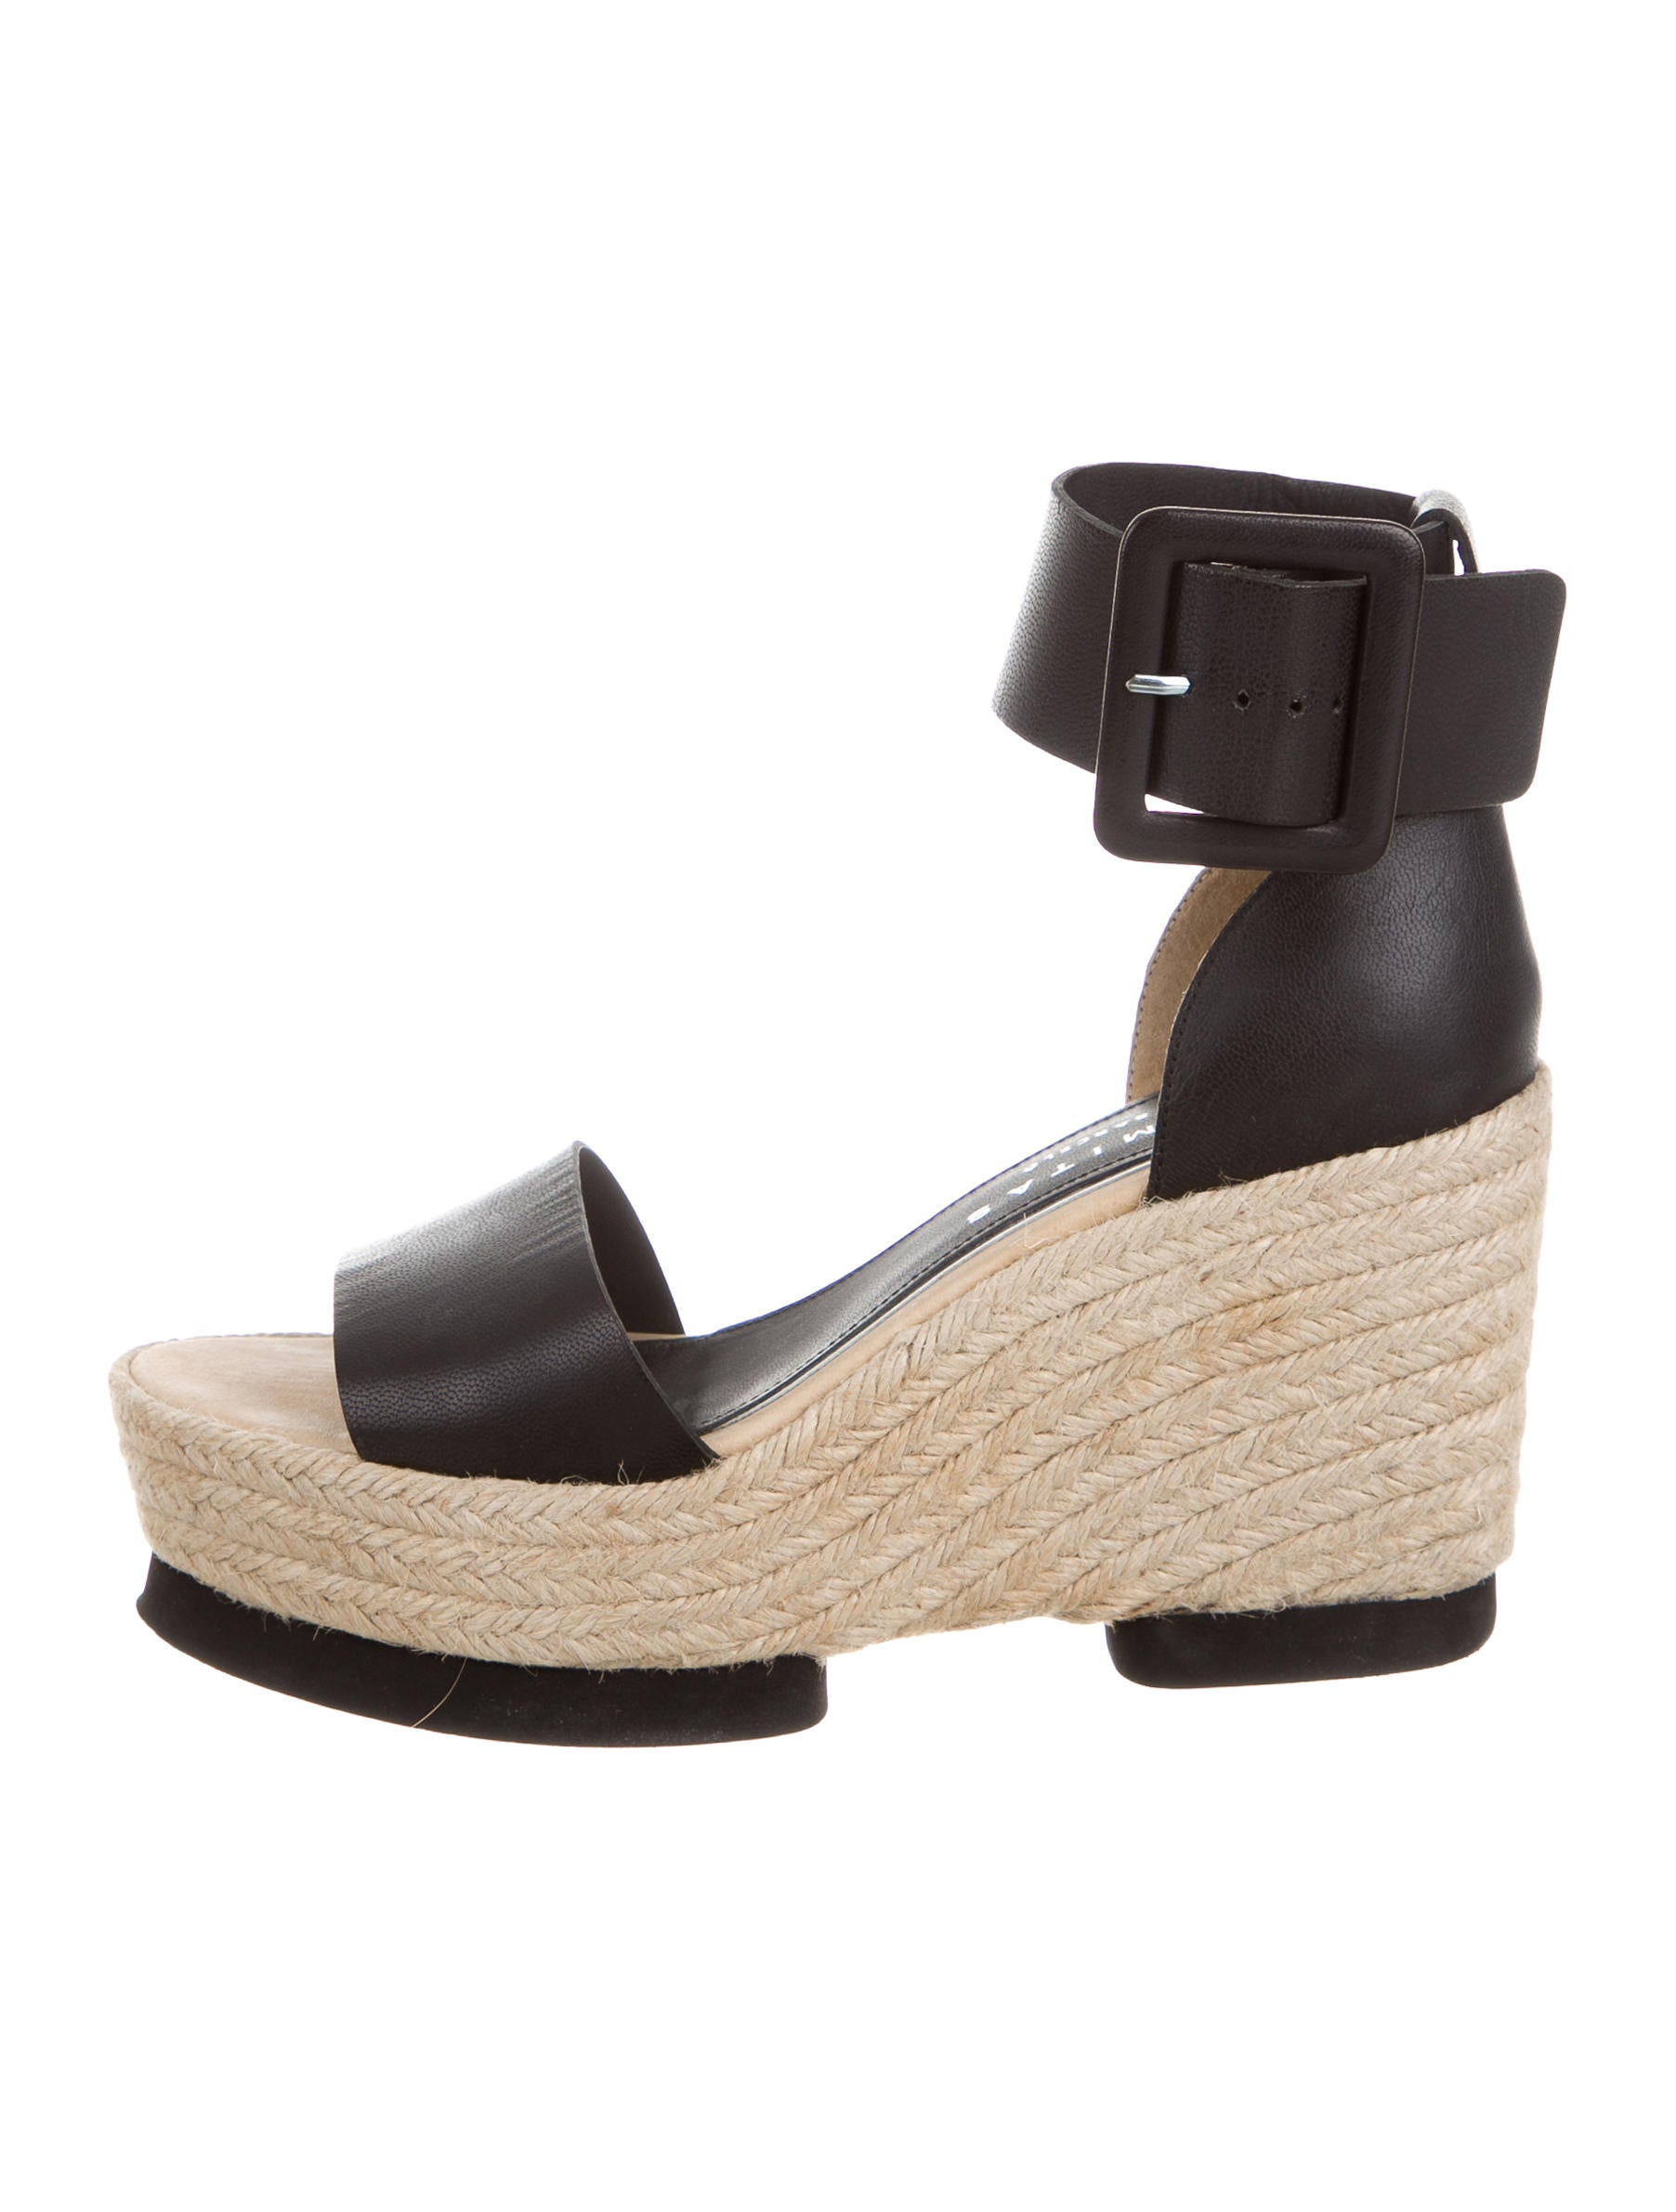 Black Wedge Shoes Size